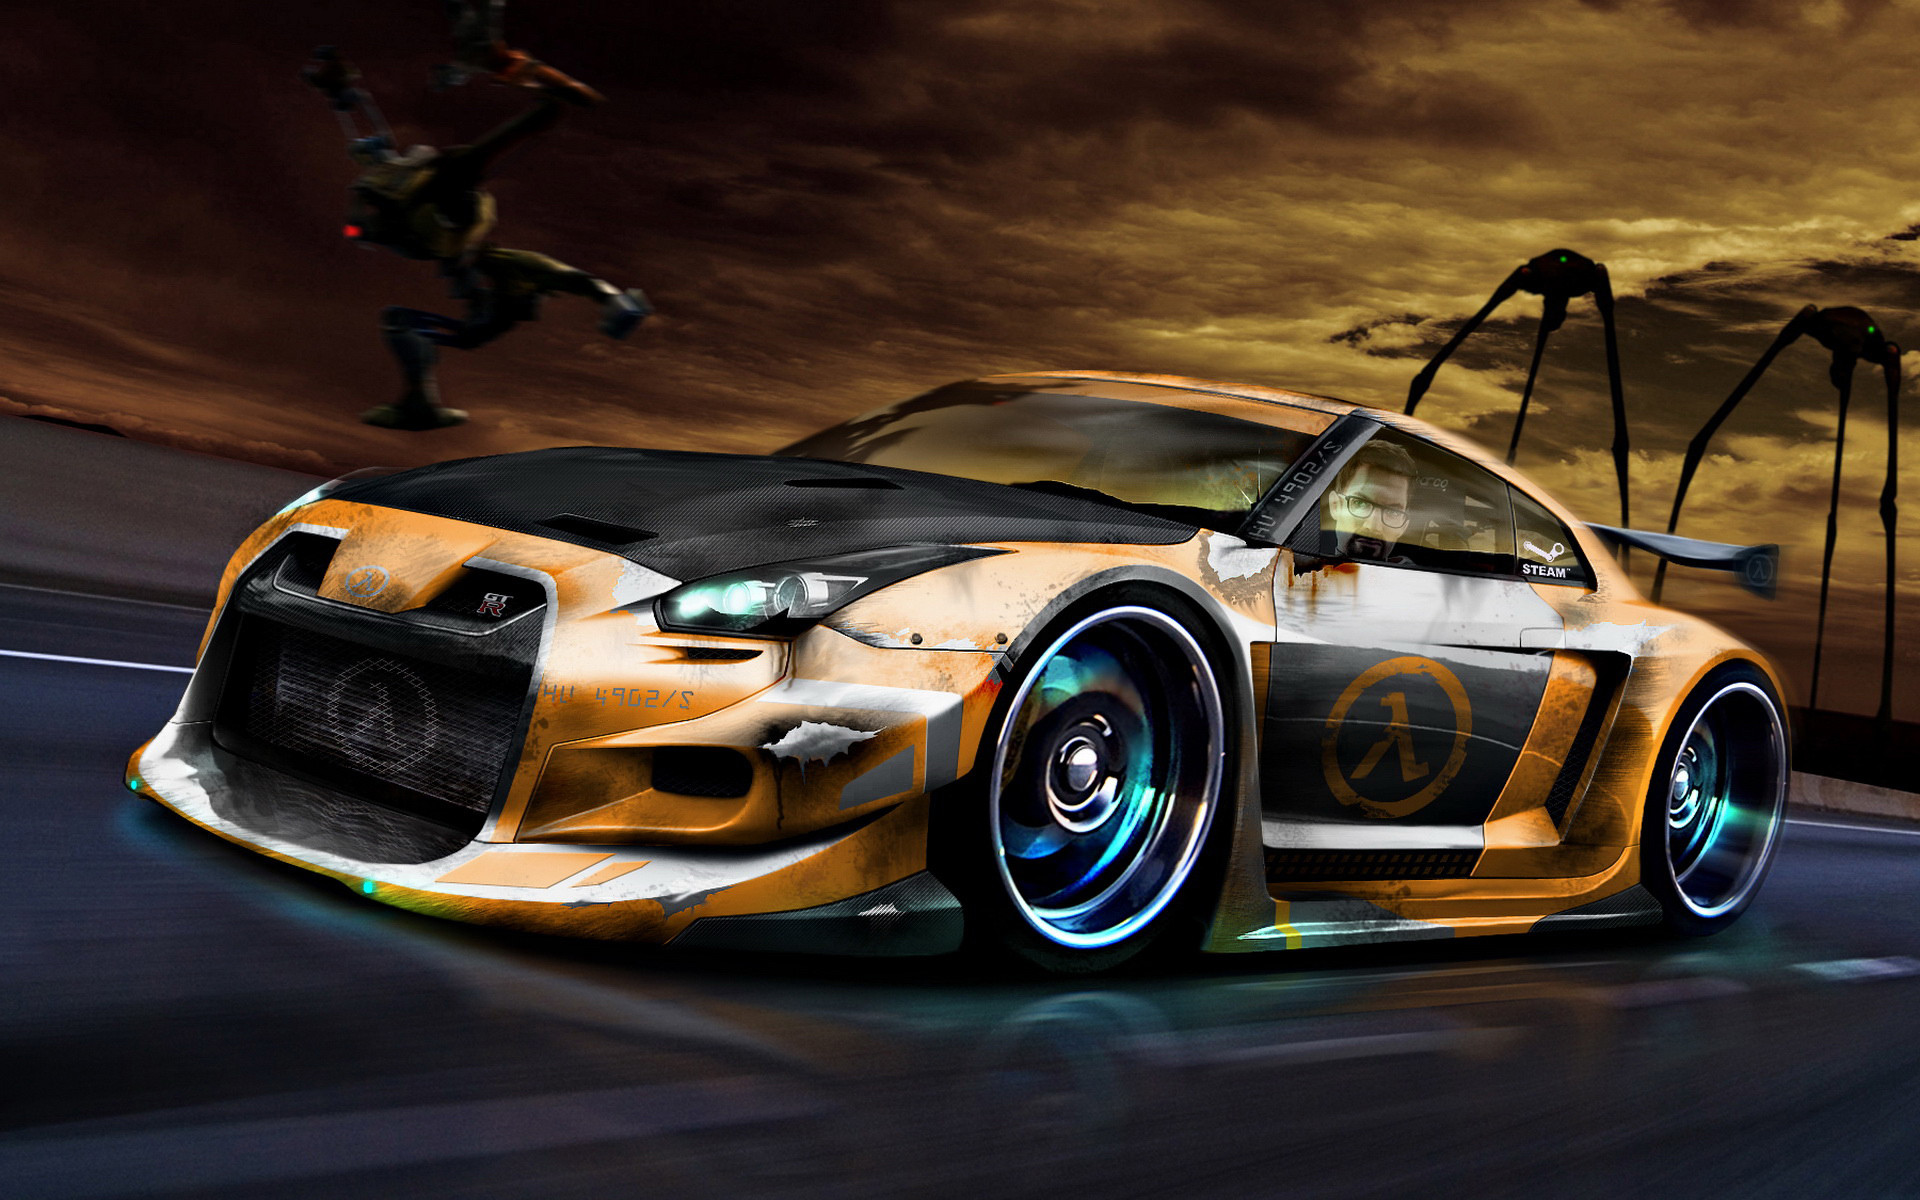 Cool car wallpapers for desktop 68 images - Car wallpaper for computer ...